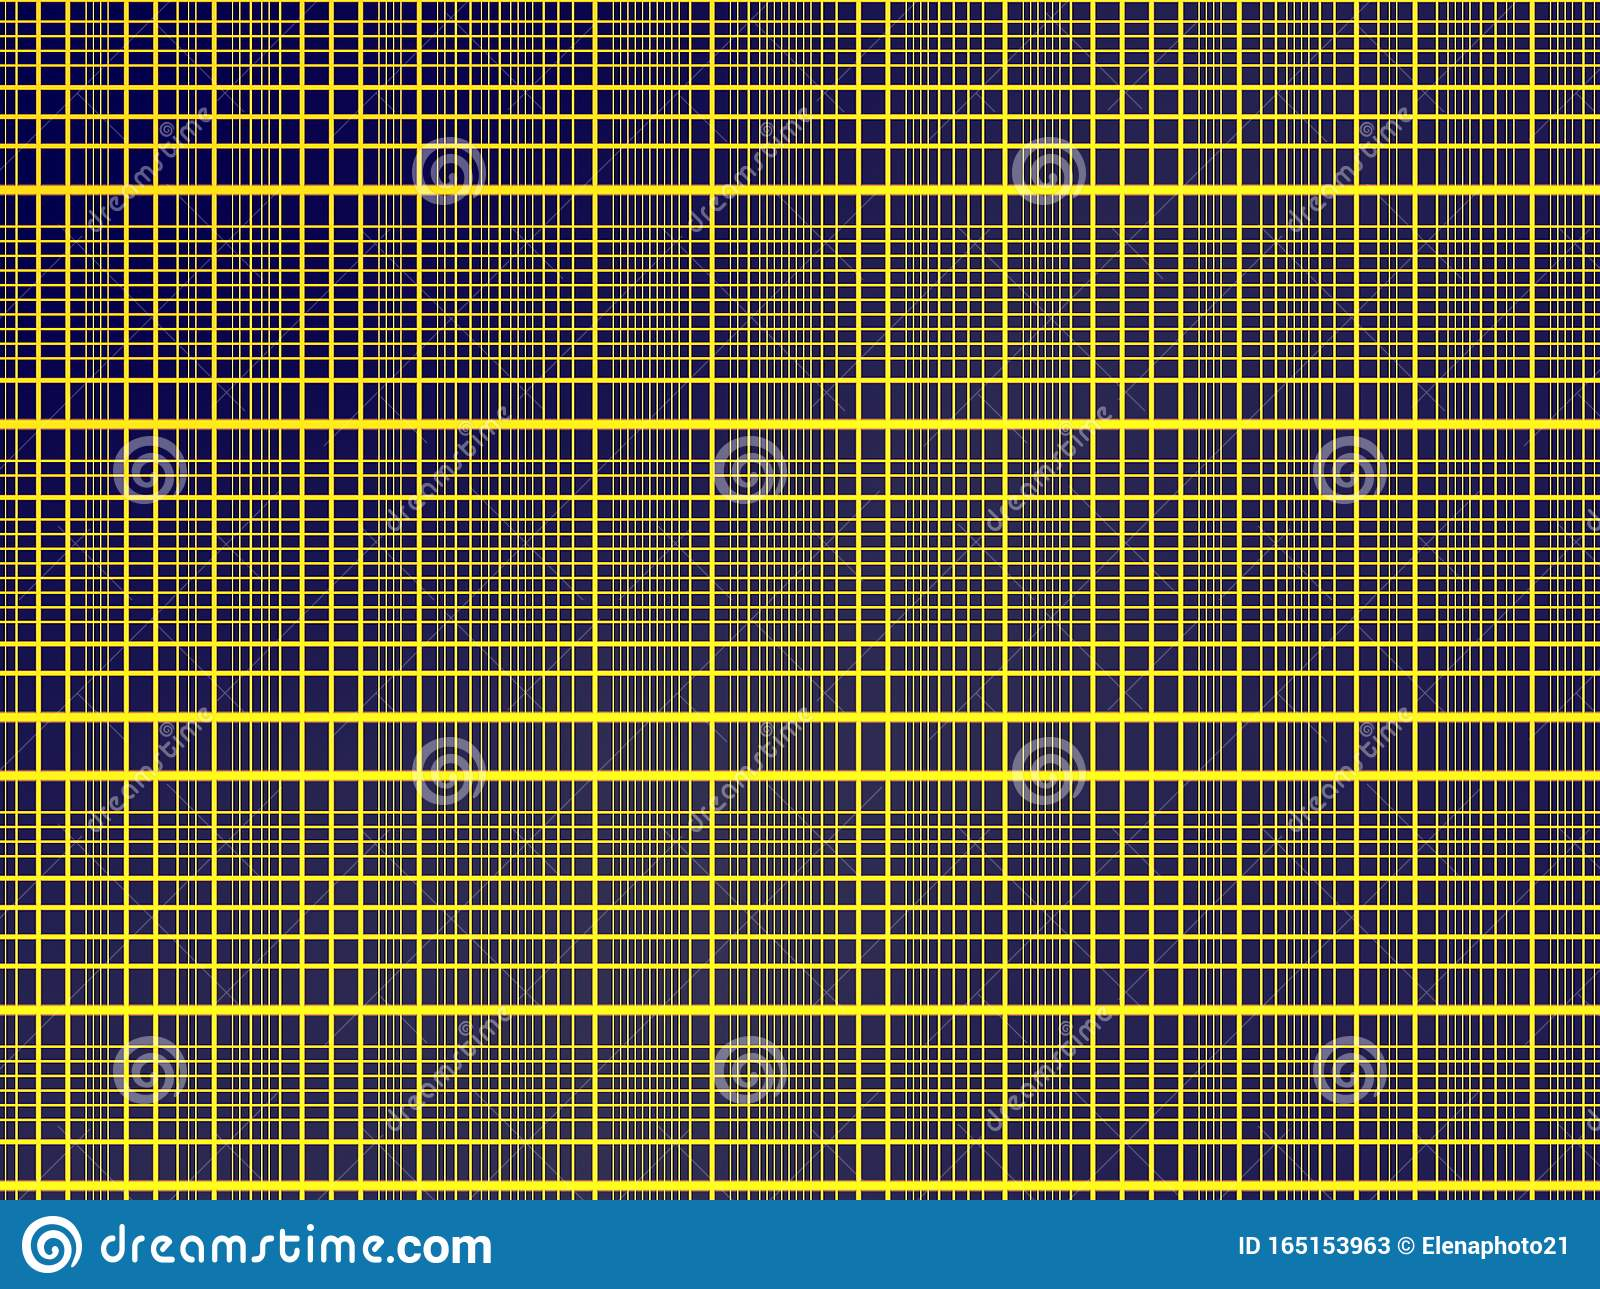 Black background full of horizontal and vertical yellow lines